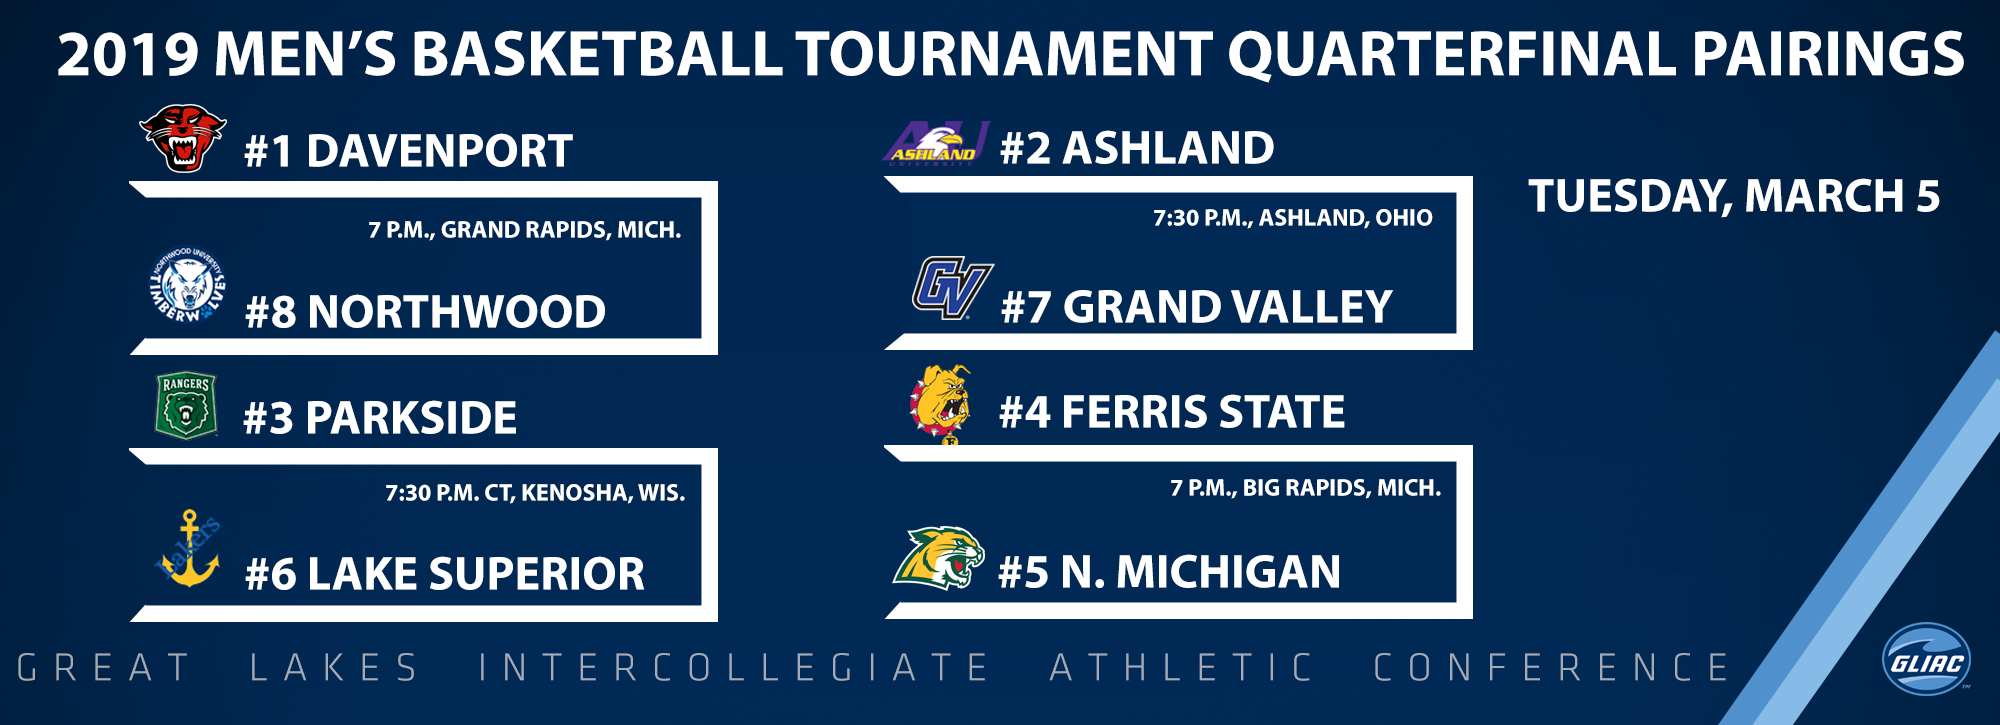 Men's basketball first round includes games at Davenport, Ashland, Parkside and Ferris State